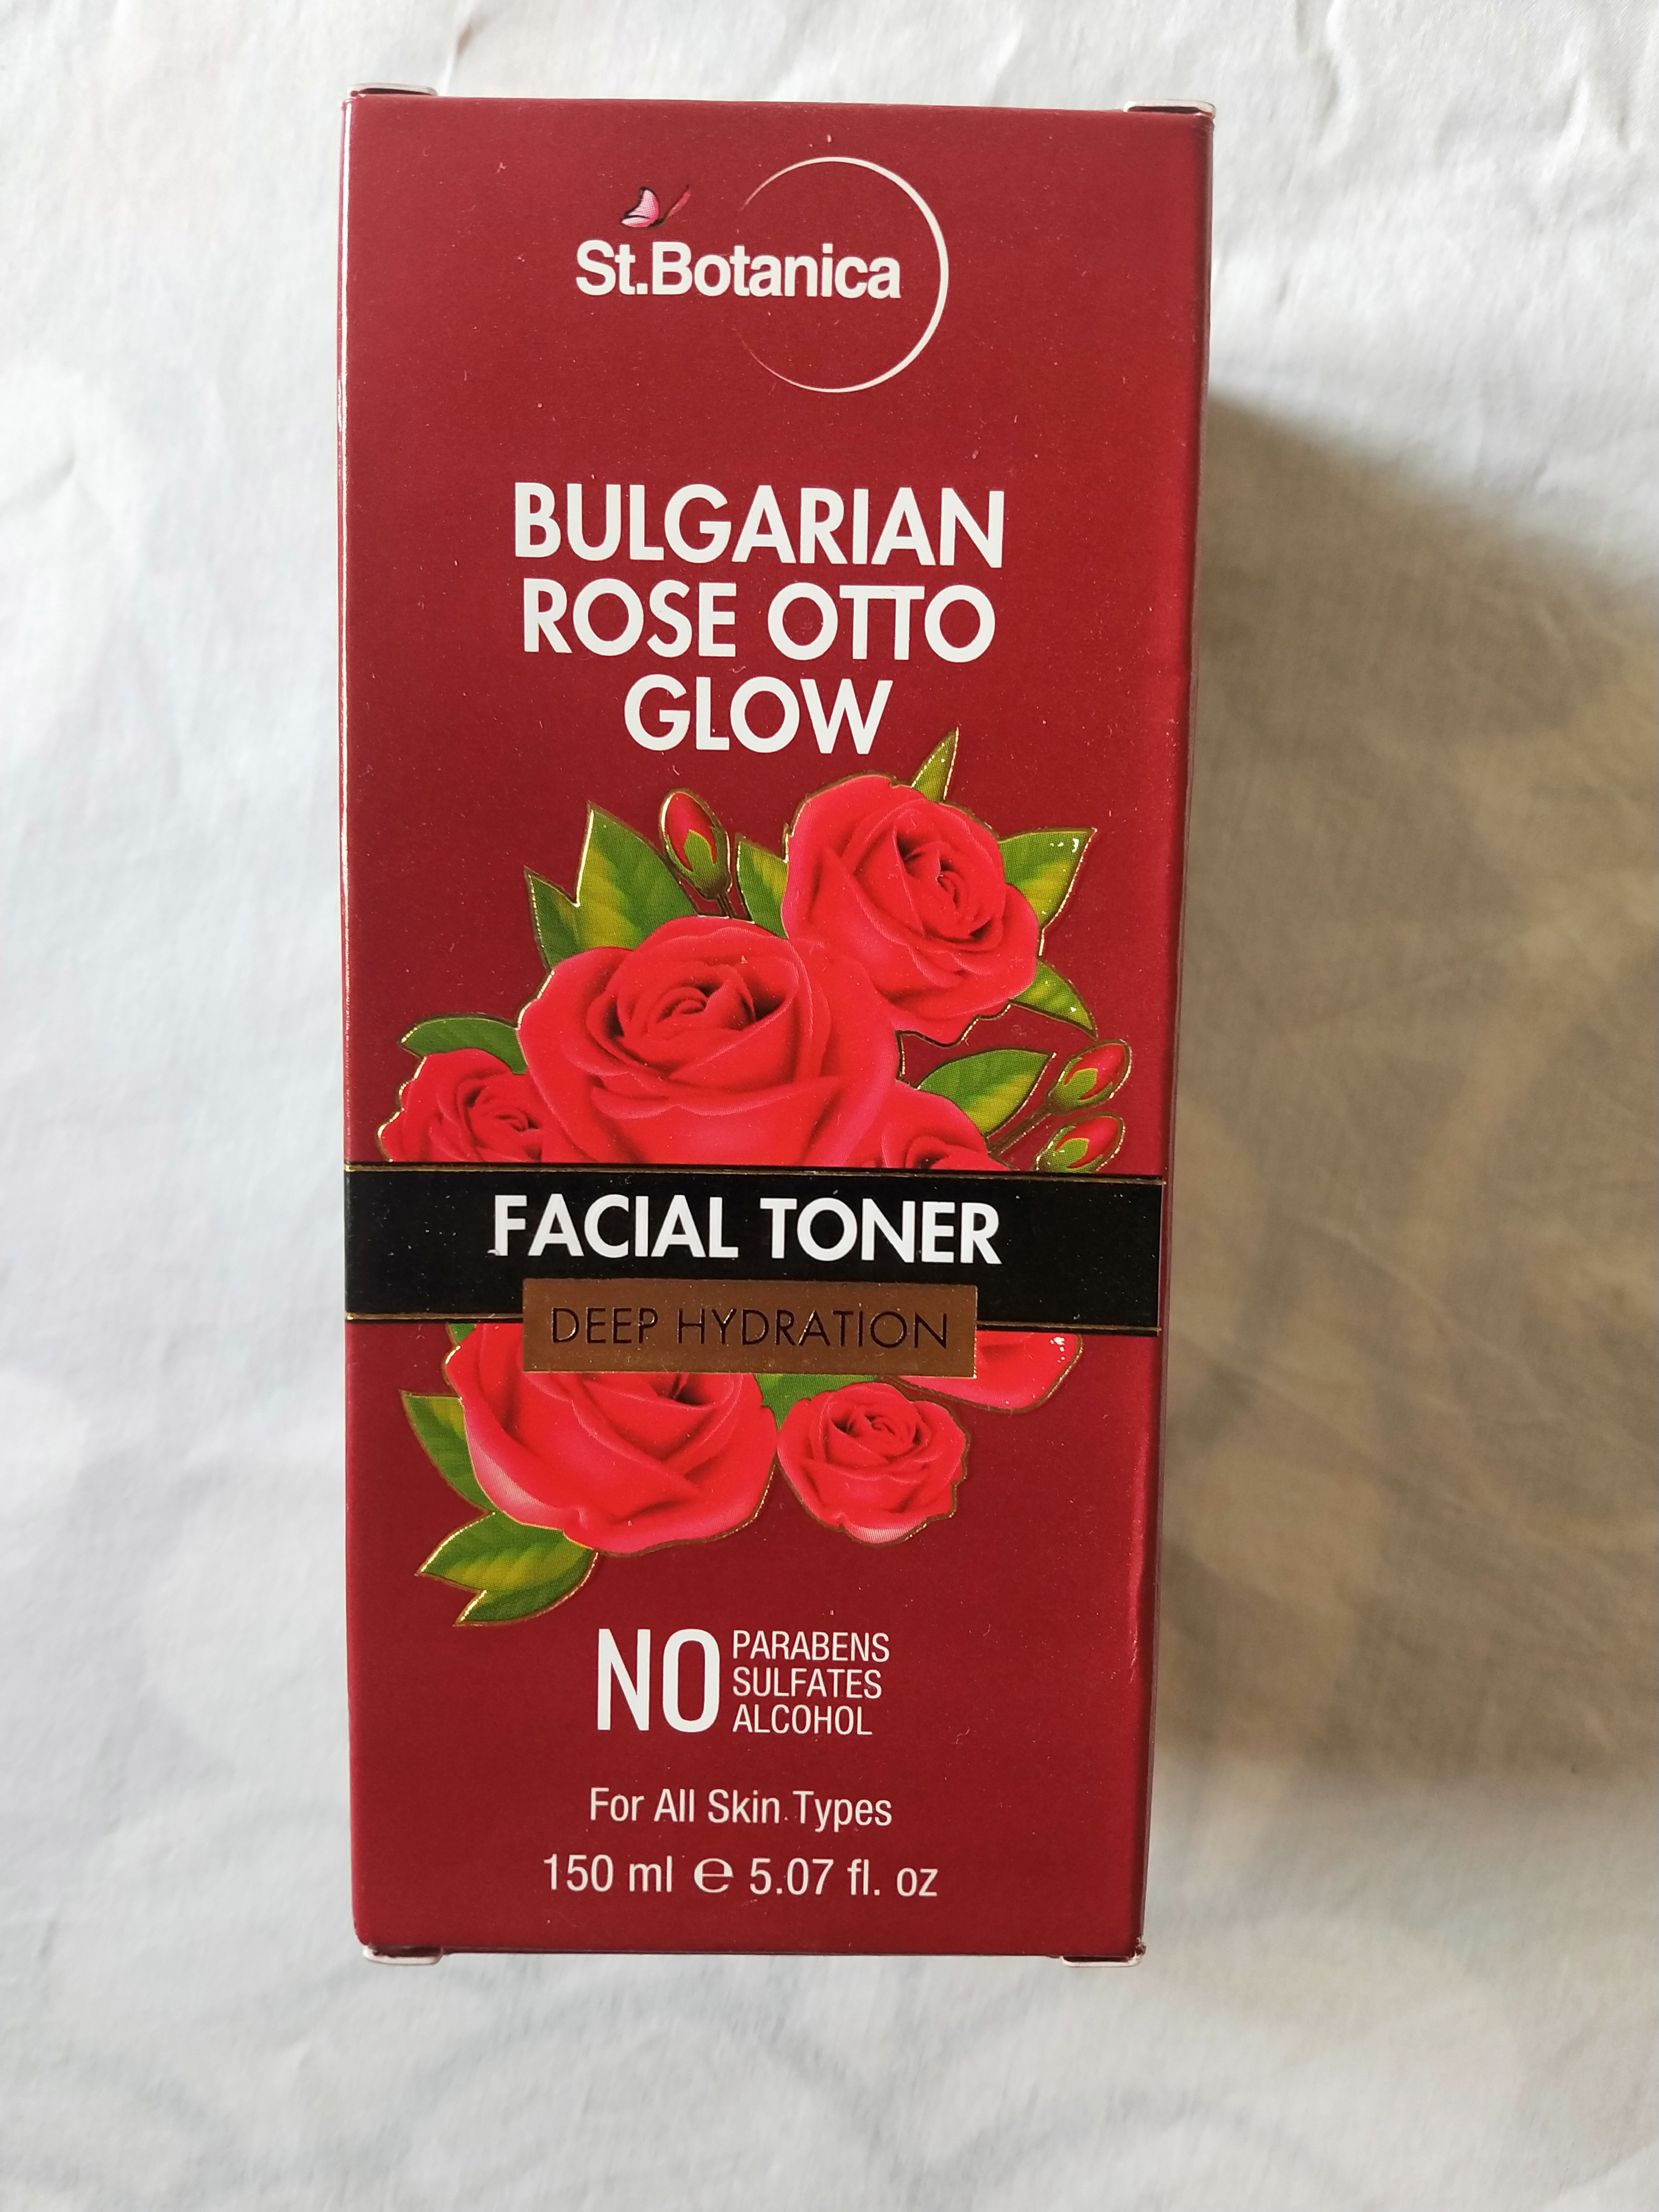 StBotanica Bulgarian Rose Otto Glow Deep Hydration Facial Toner pic 2-Rose toner – good for hydration-By miss_hungry_soul